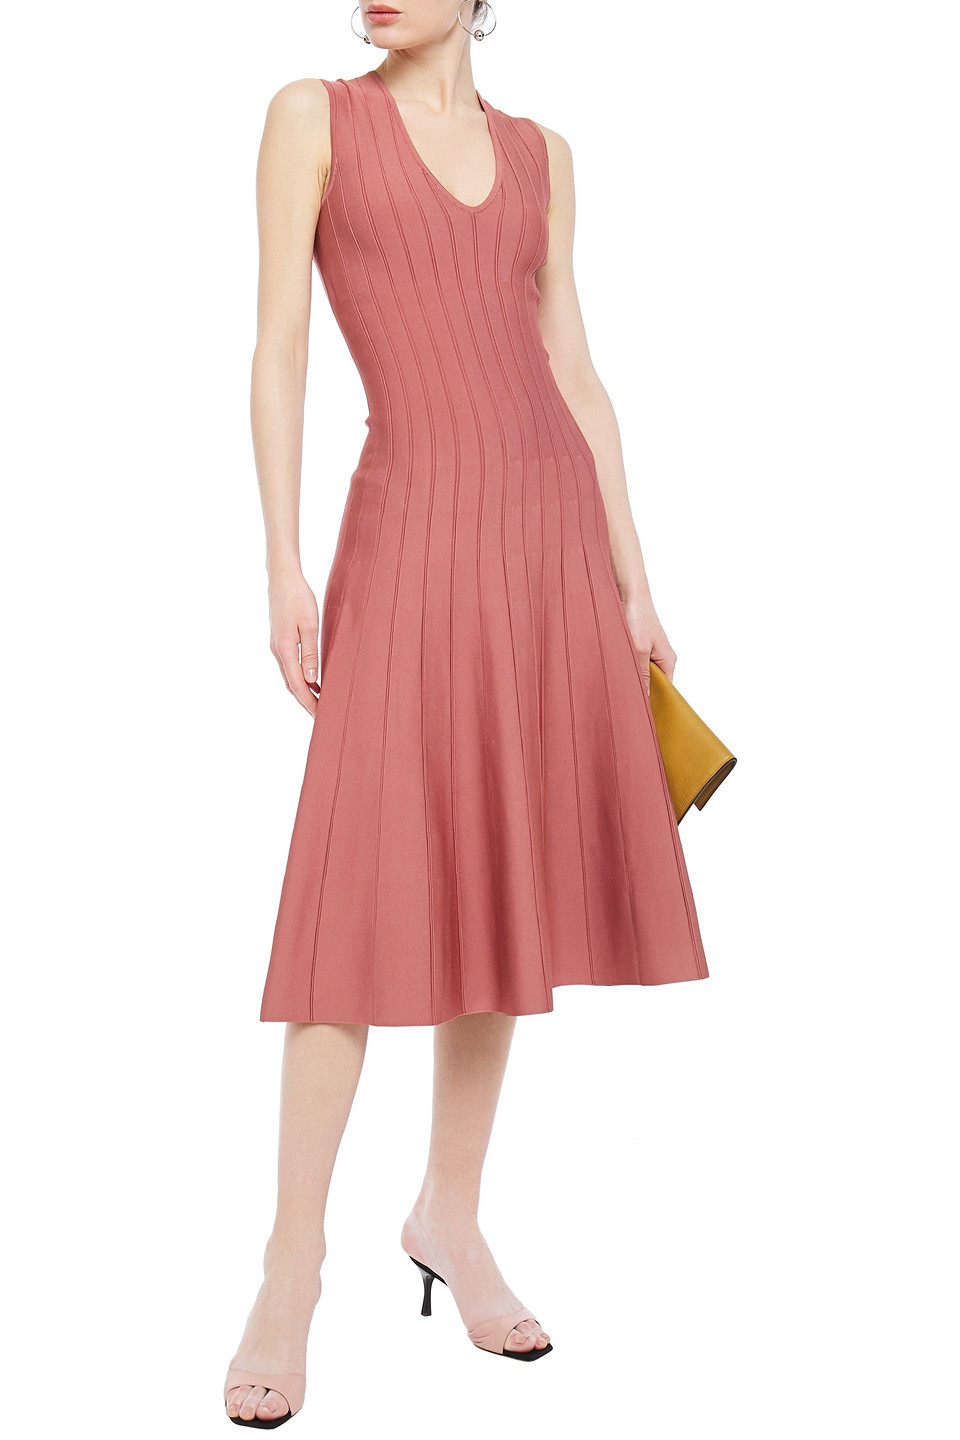 Casasola | Casasola Woman Ribbed Stretch-knit Midi Dress Antique Rose | Clouty